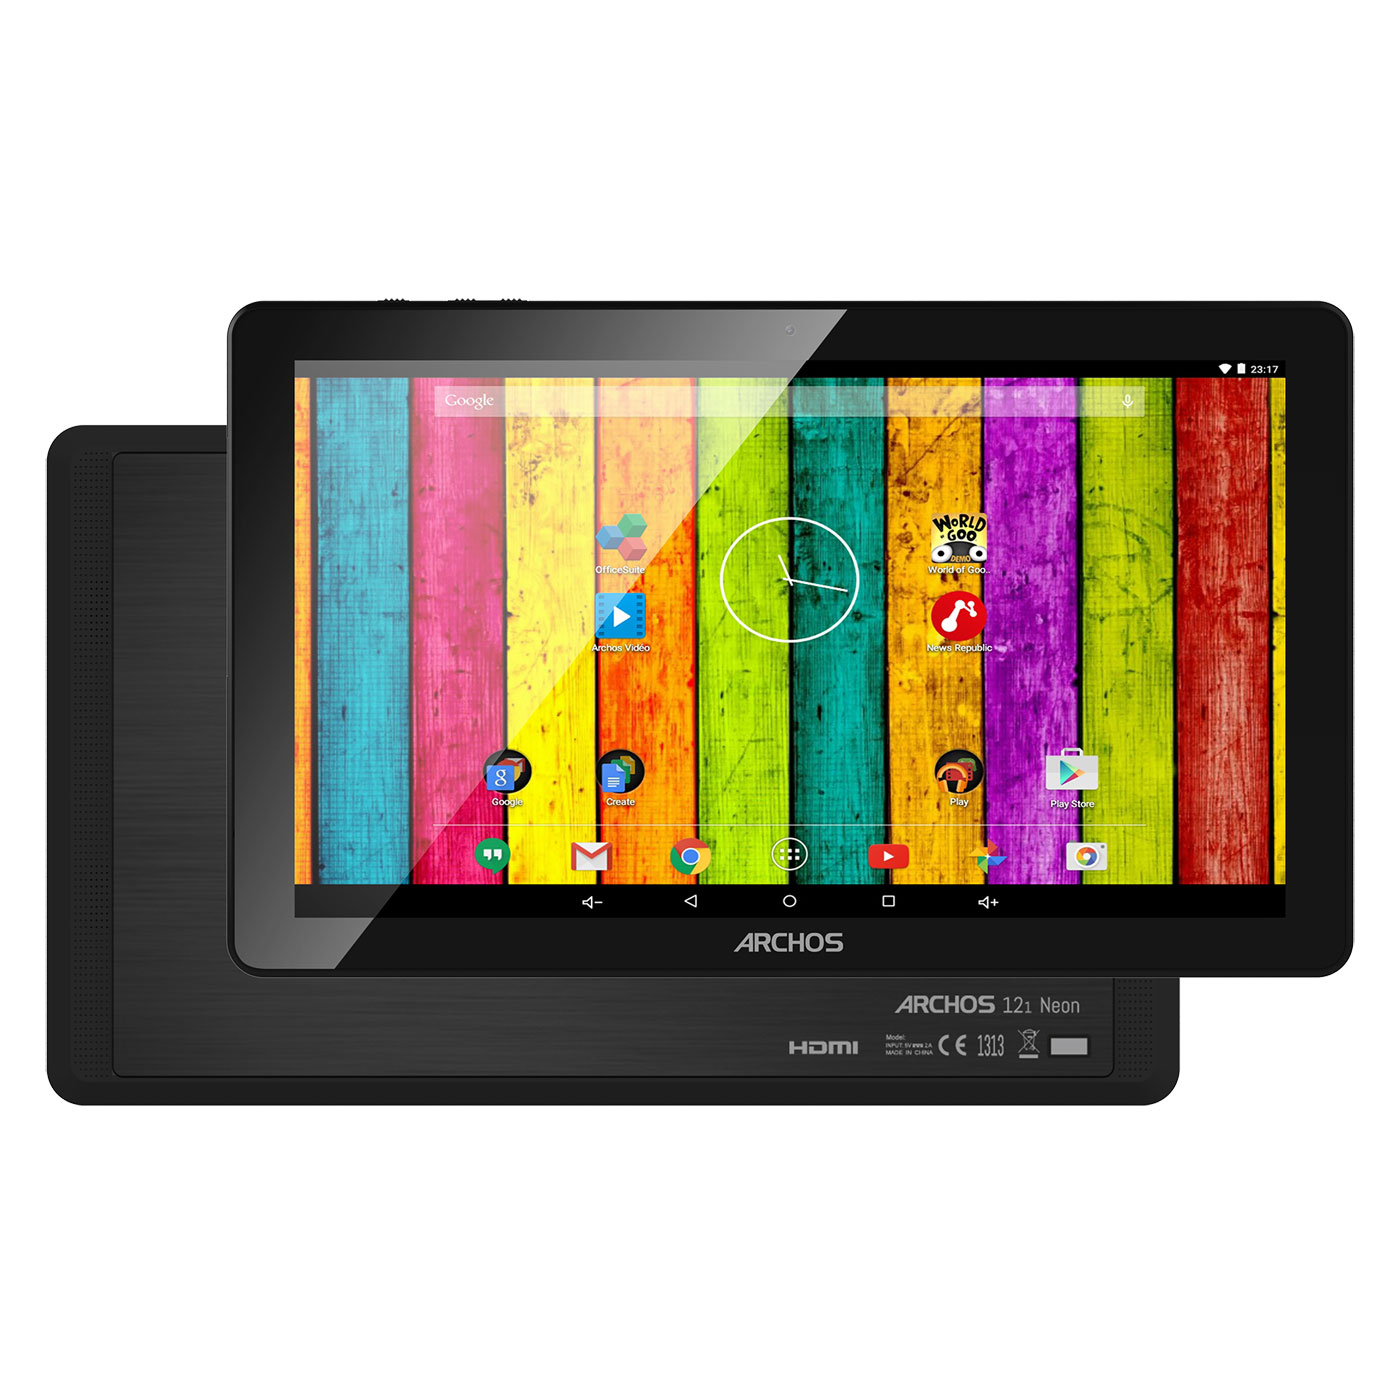 archos 121 neon 16 go tablette tactile archos sur. Black Bedroom Furniture Sets. Home Design Ideas